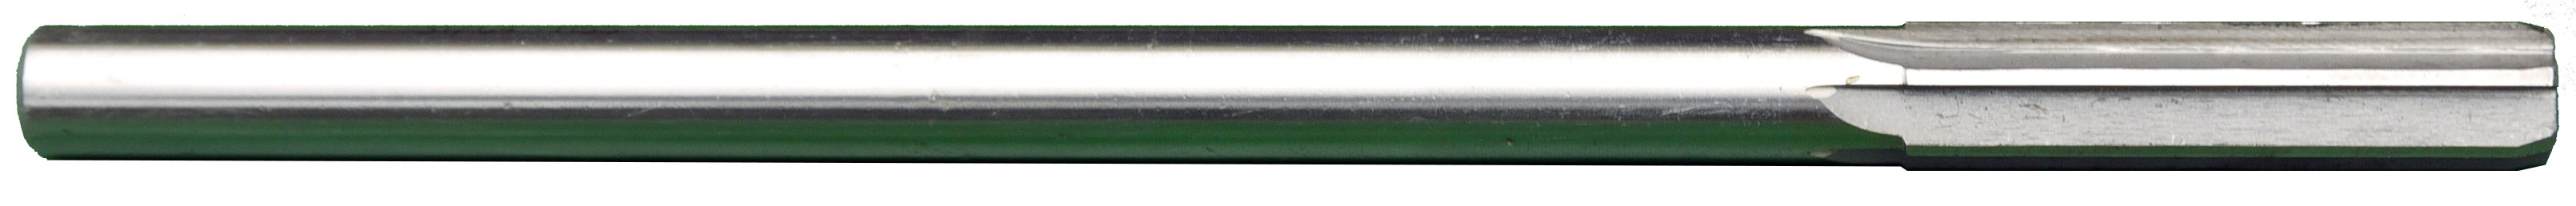 HSS Machine Chucking Reamer with Straight Shank and Straight Flute